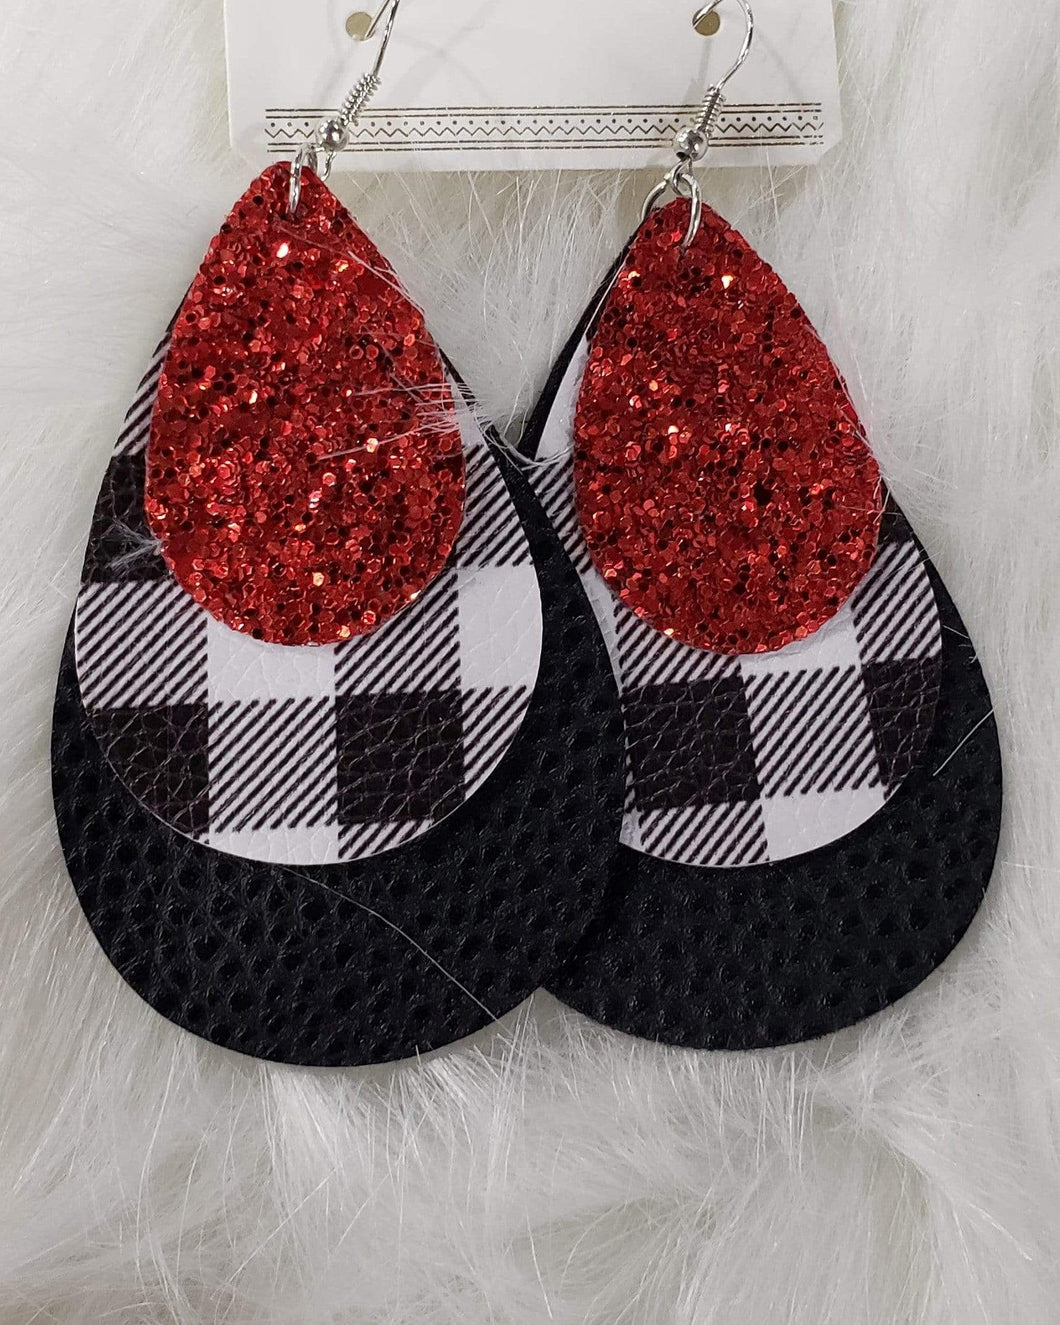 Jewelry Black, plaid, and red glitter earrings